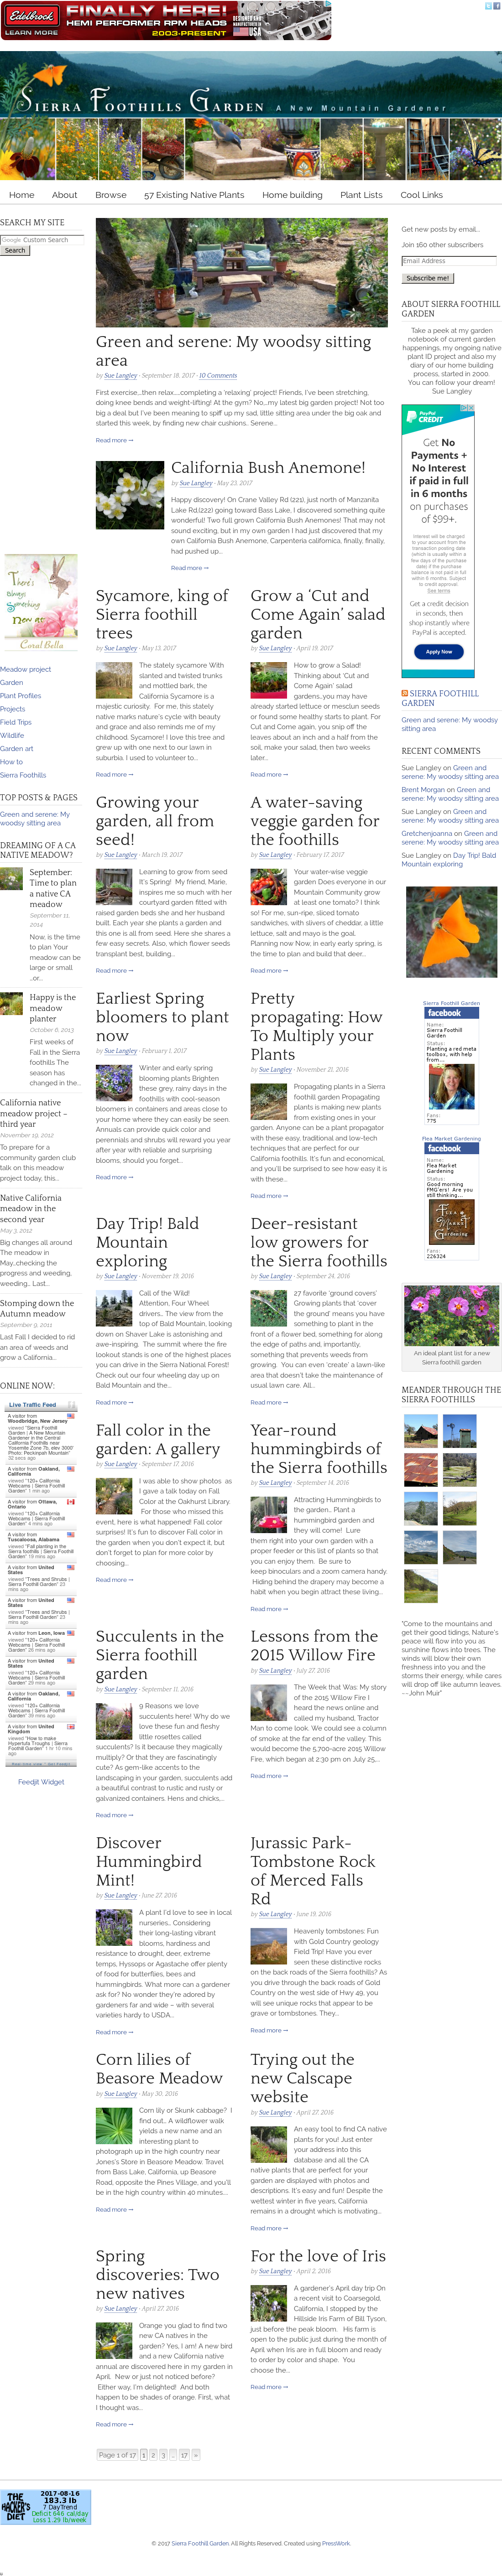 Sierra Foothill Garden Website History